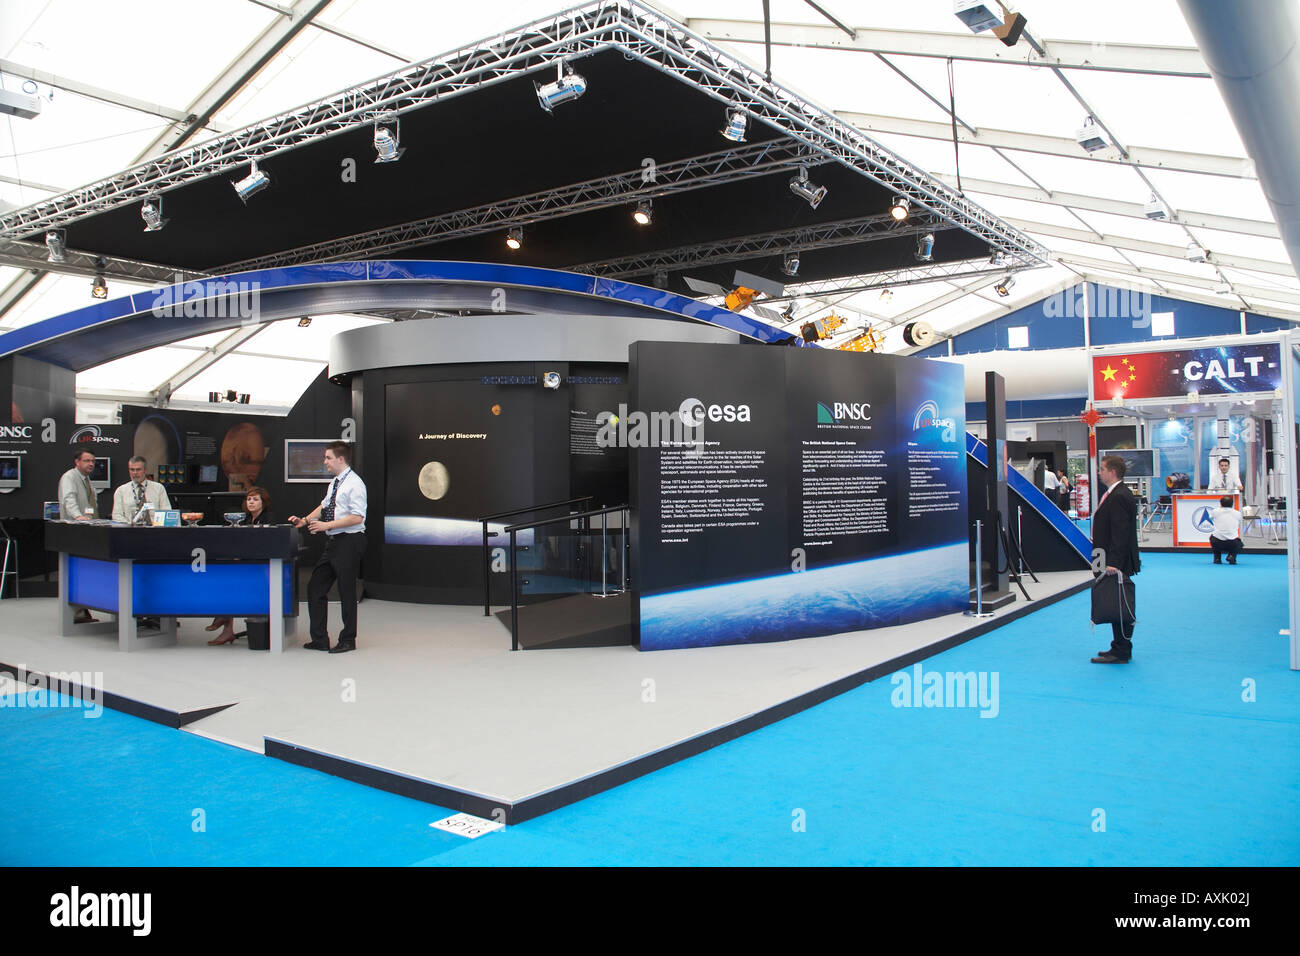 European Space Agency esa exhibition display trade show stand with visitors at Farnborough International Airshow - Stock Image